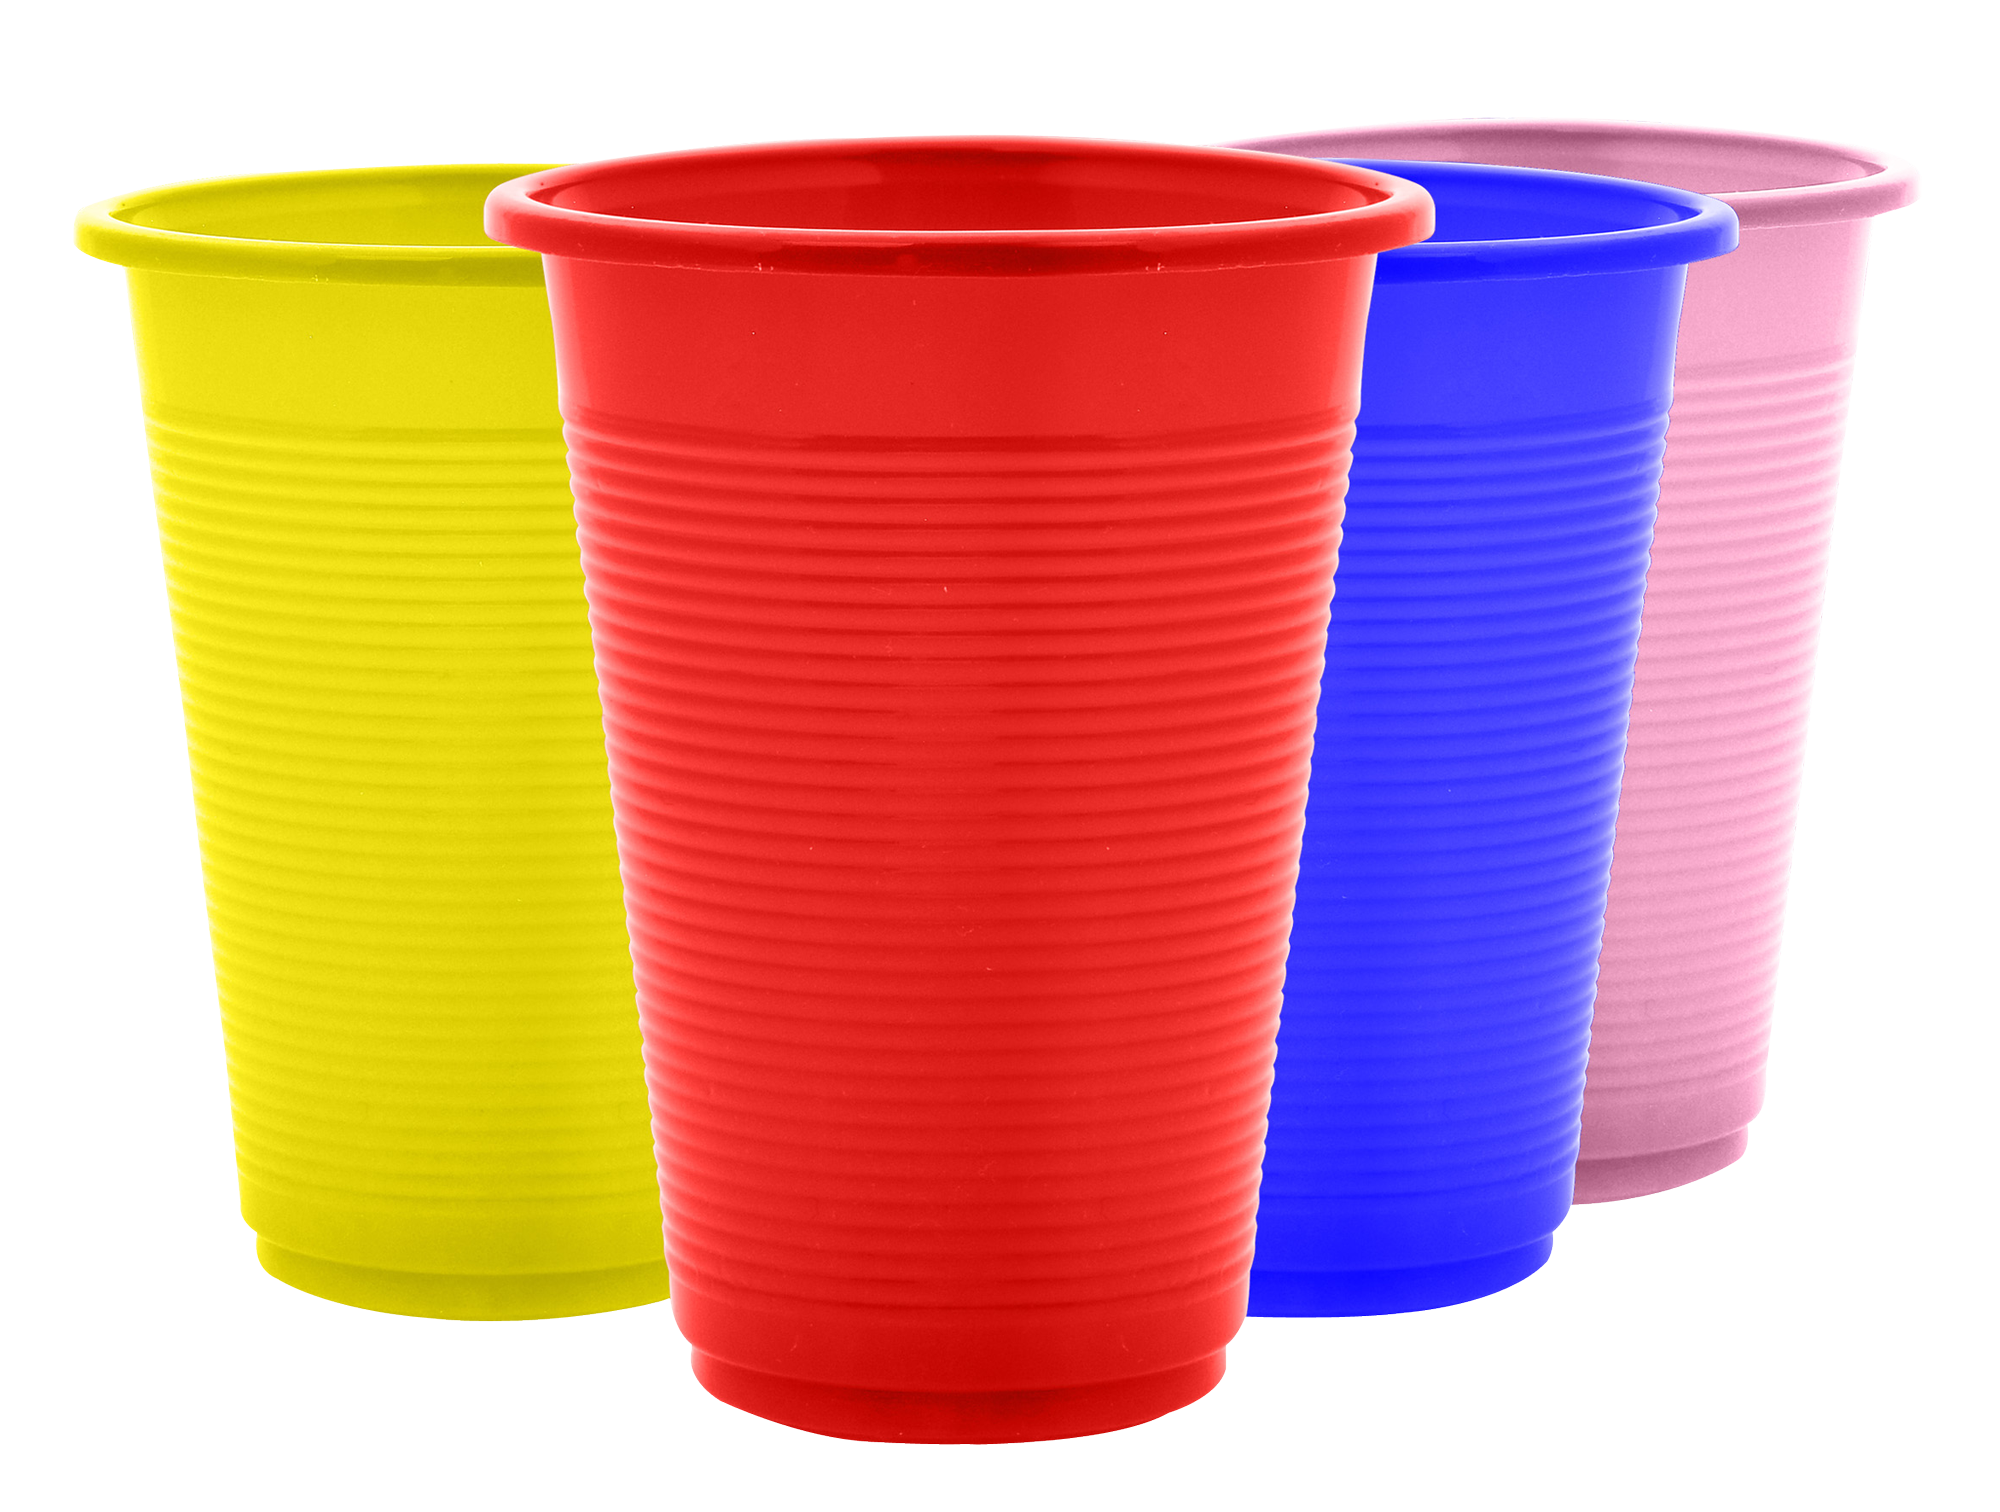 Cups png image purepng. Cup clipart plastic cup